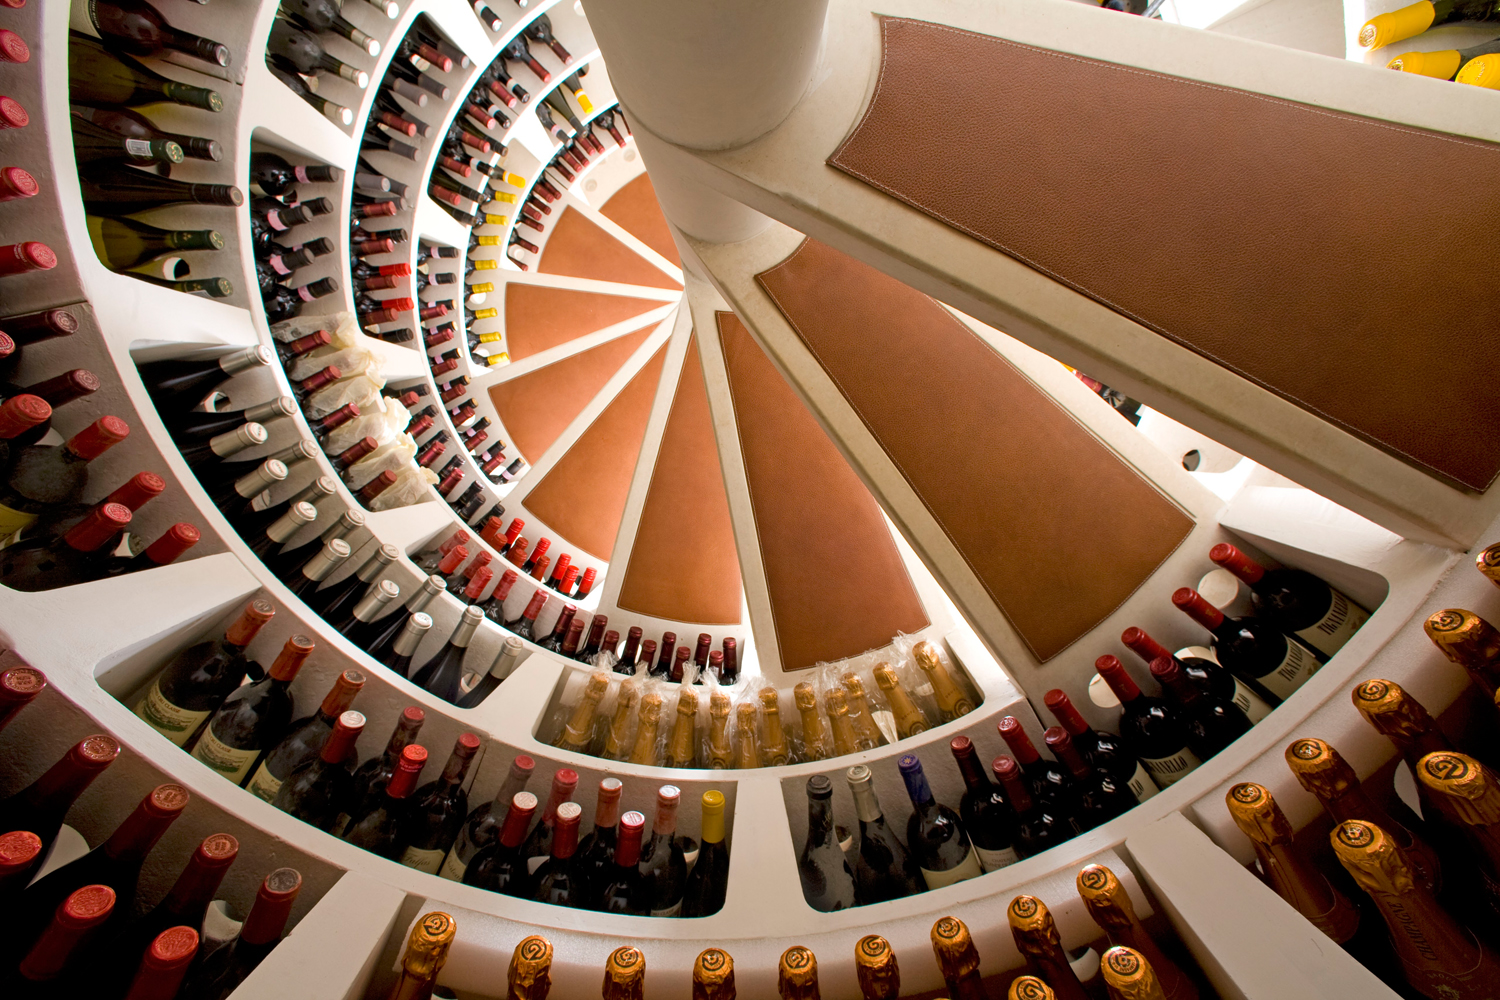 Underground wine cellars why to choose a Spiral Cellar ... & Underground wine cellars: why to choose a Spiral Cellar - Completehome